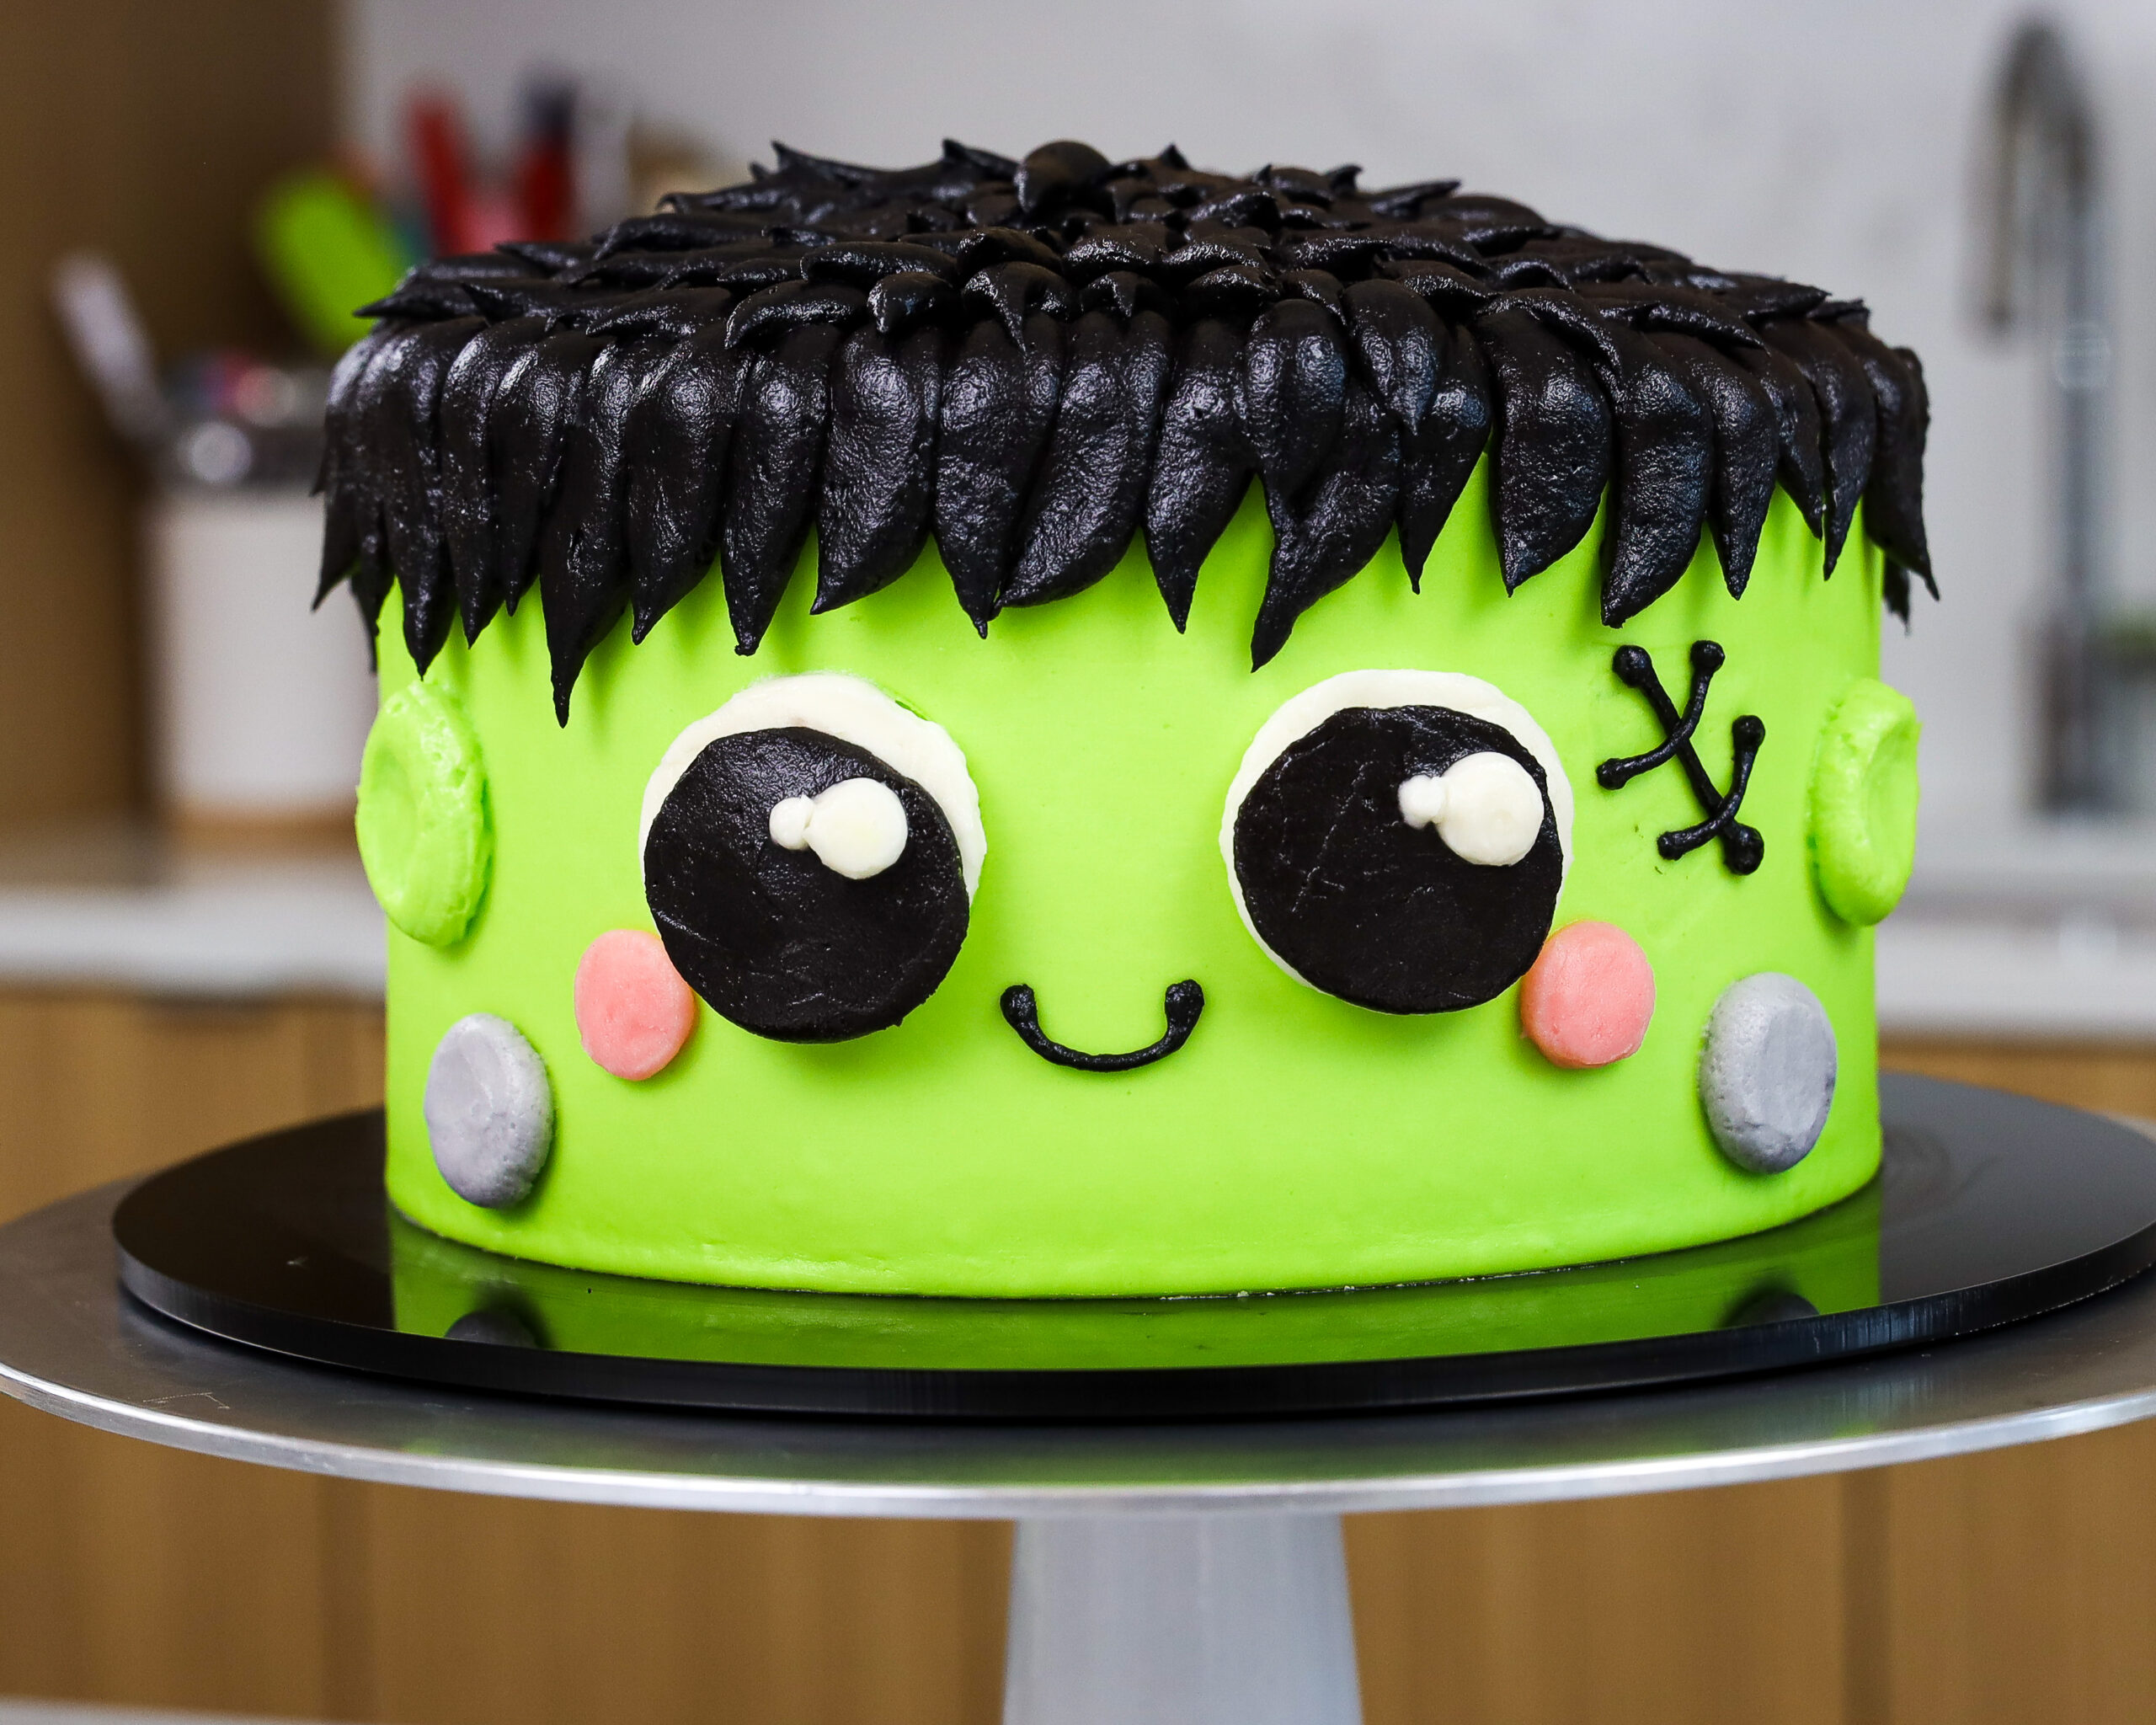 image of a cute Frankenstein cake made for halloween